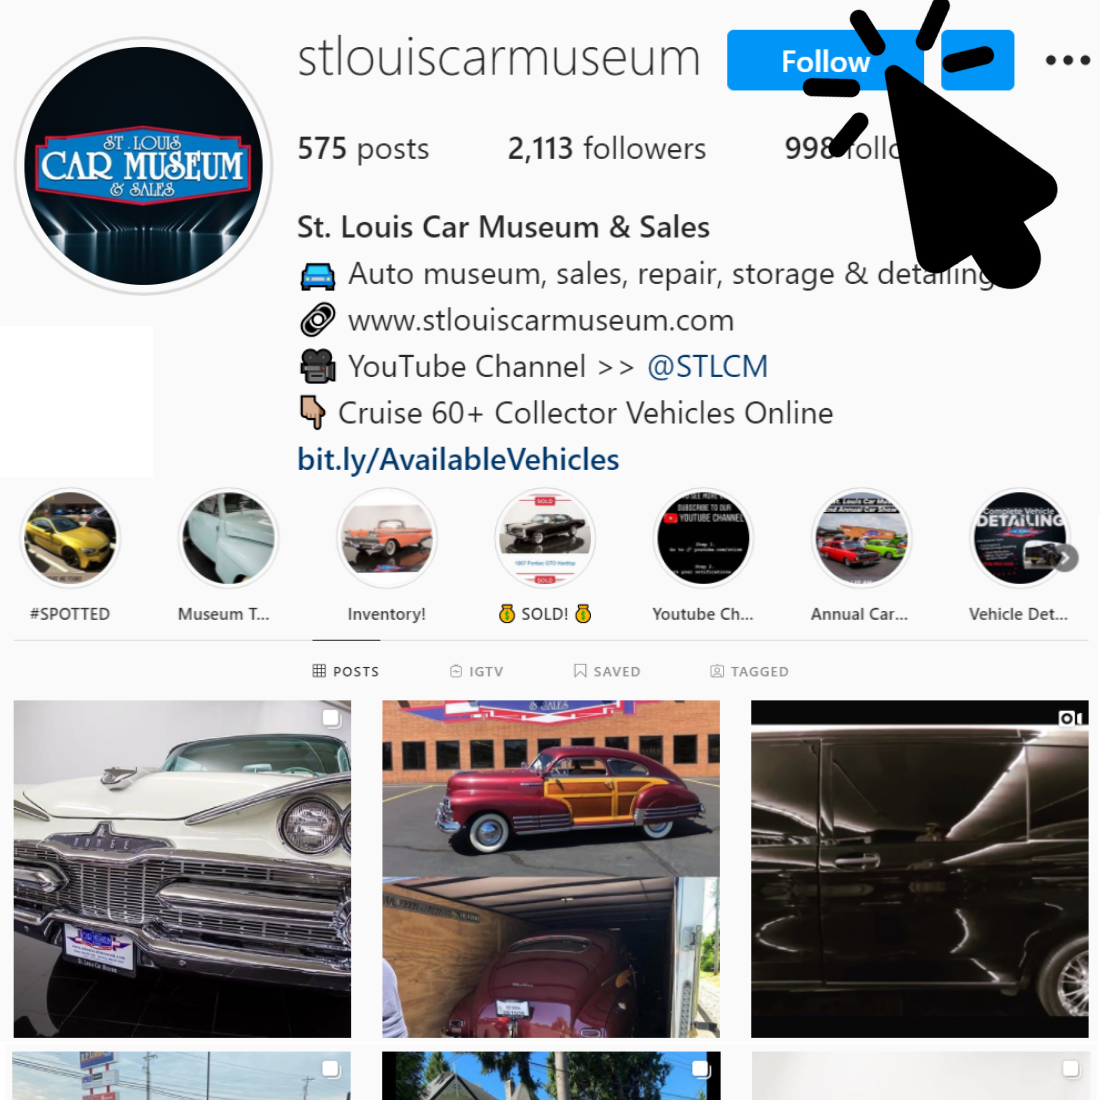 St. Louis Car Museum Instagram